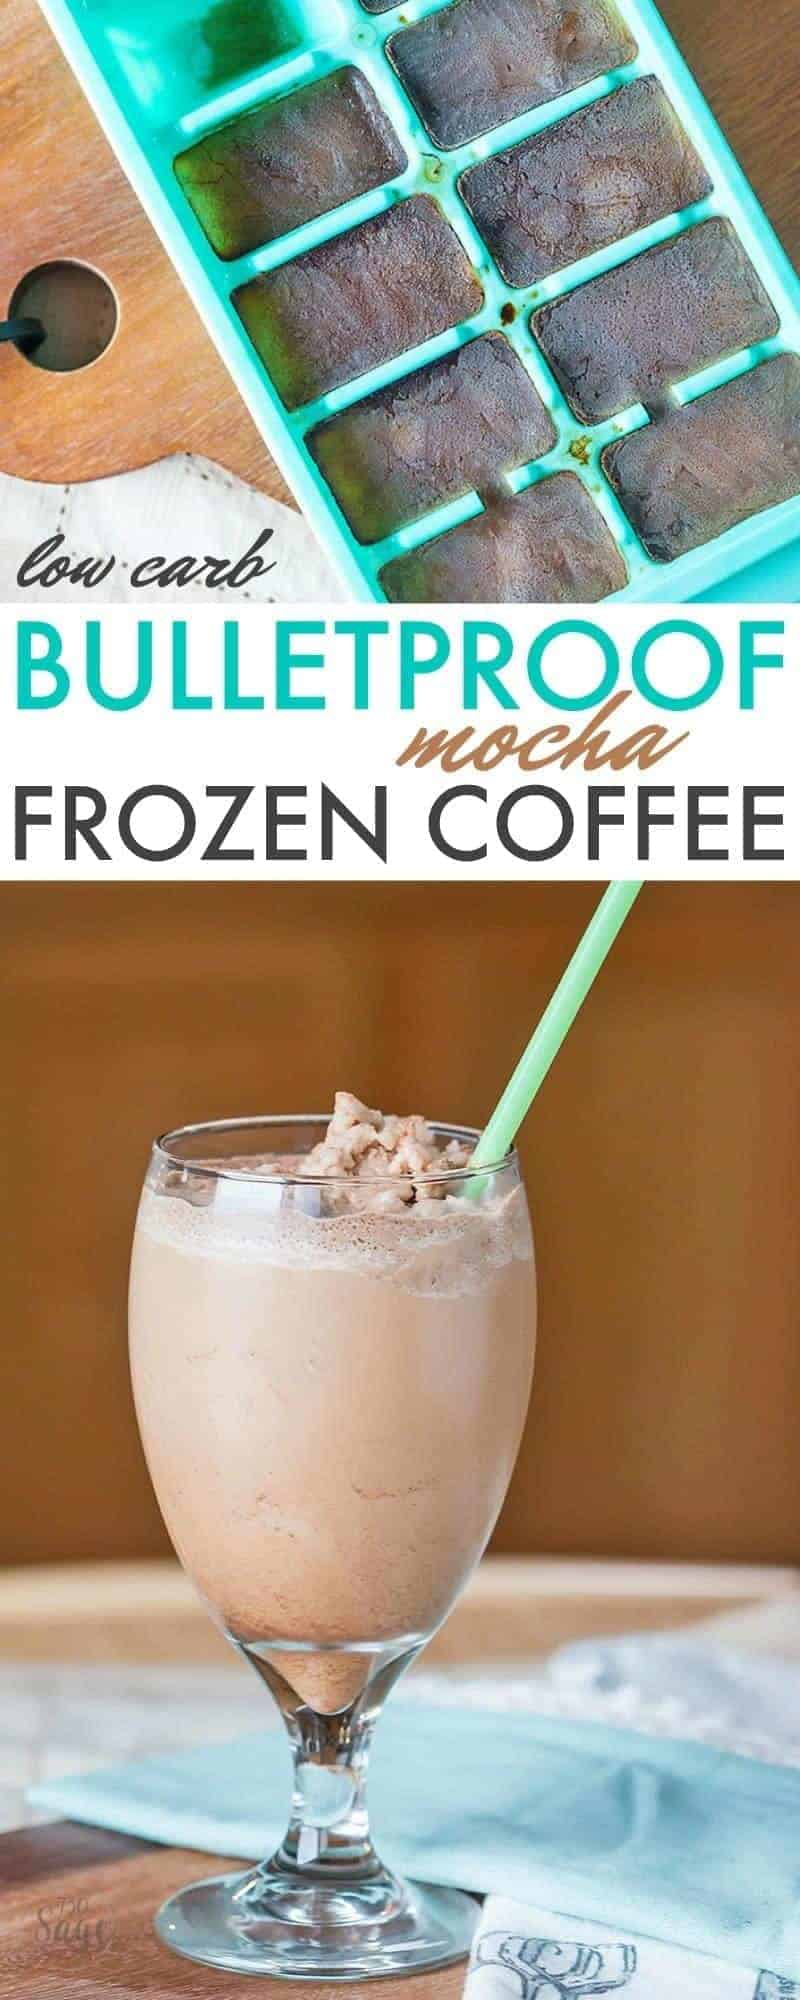 This bulletproof frozen mocha coffee recipe is perfect for low carb or ketogenic diets. Also enjoy iced instead of frozen. Easy and delicious!